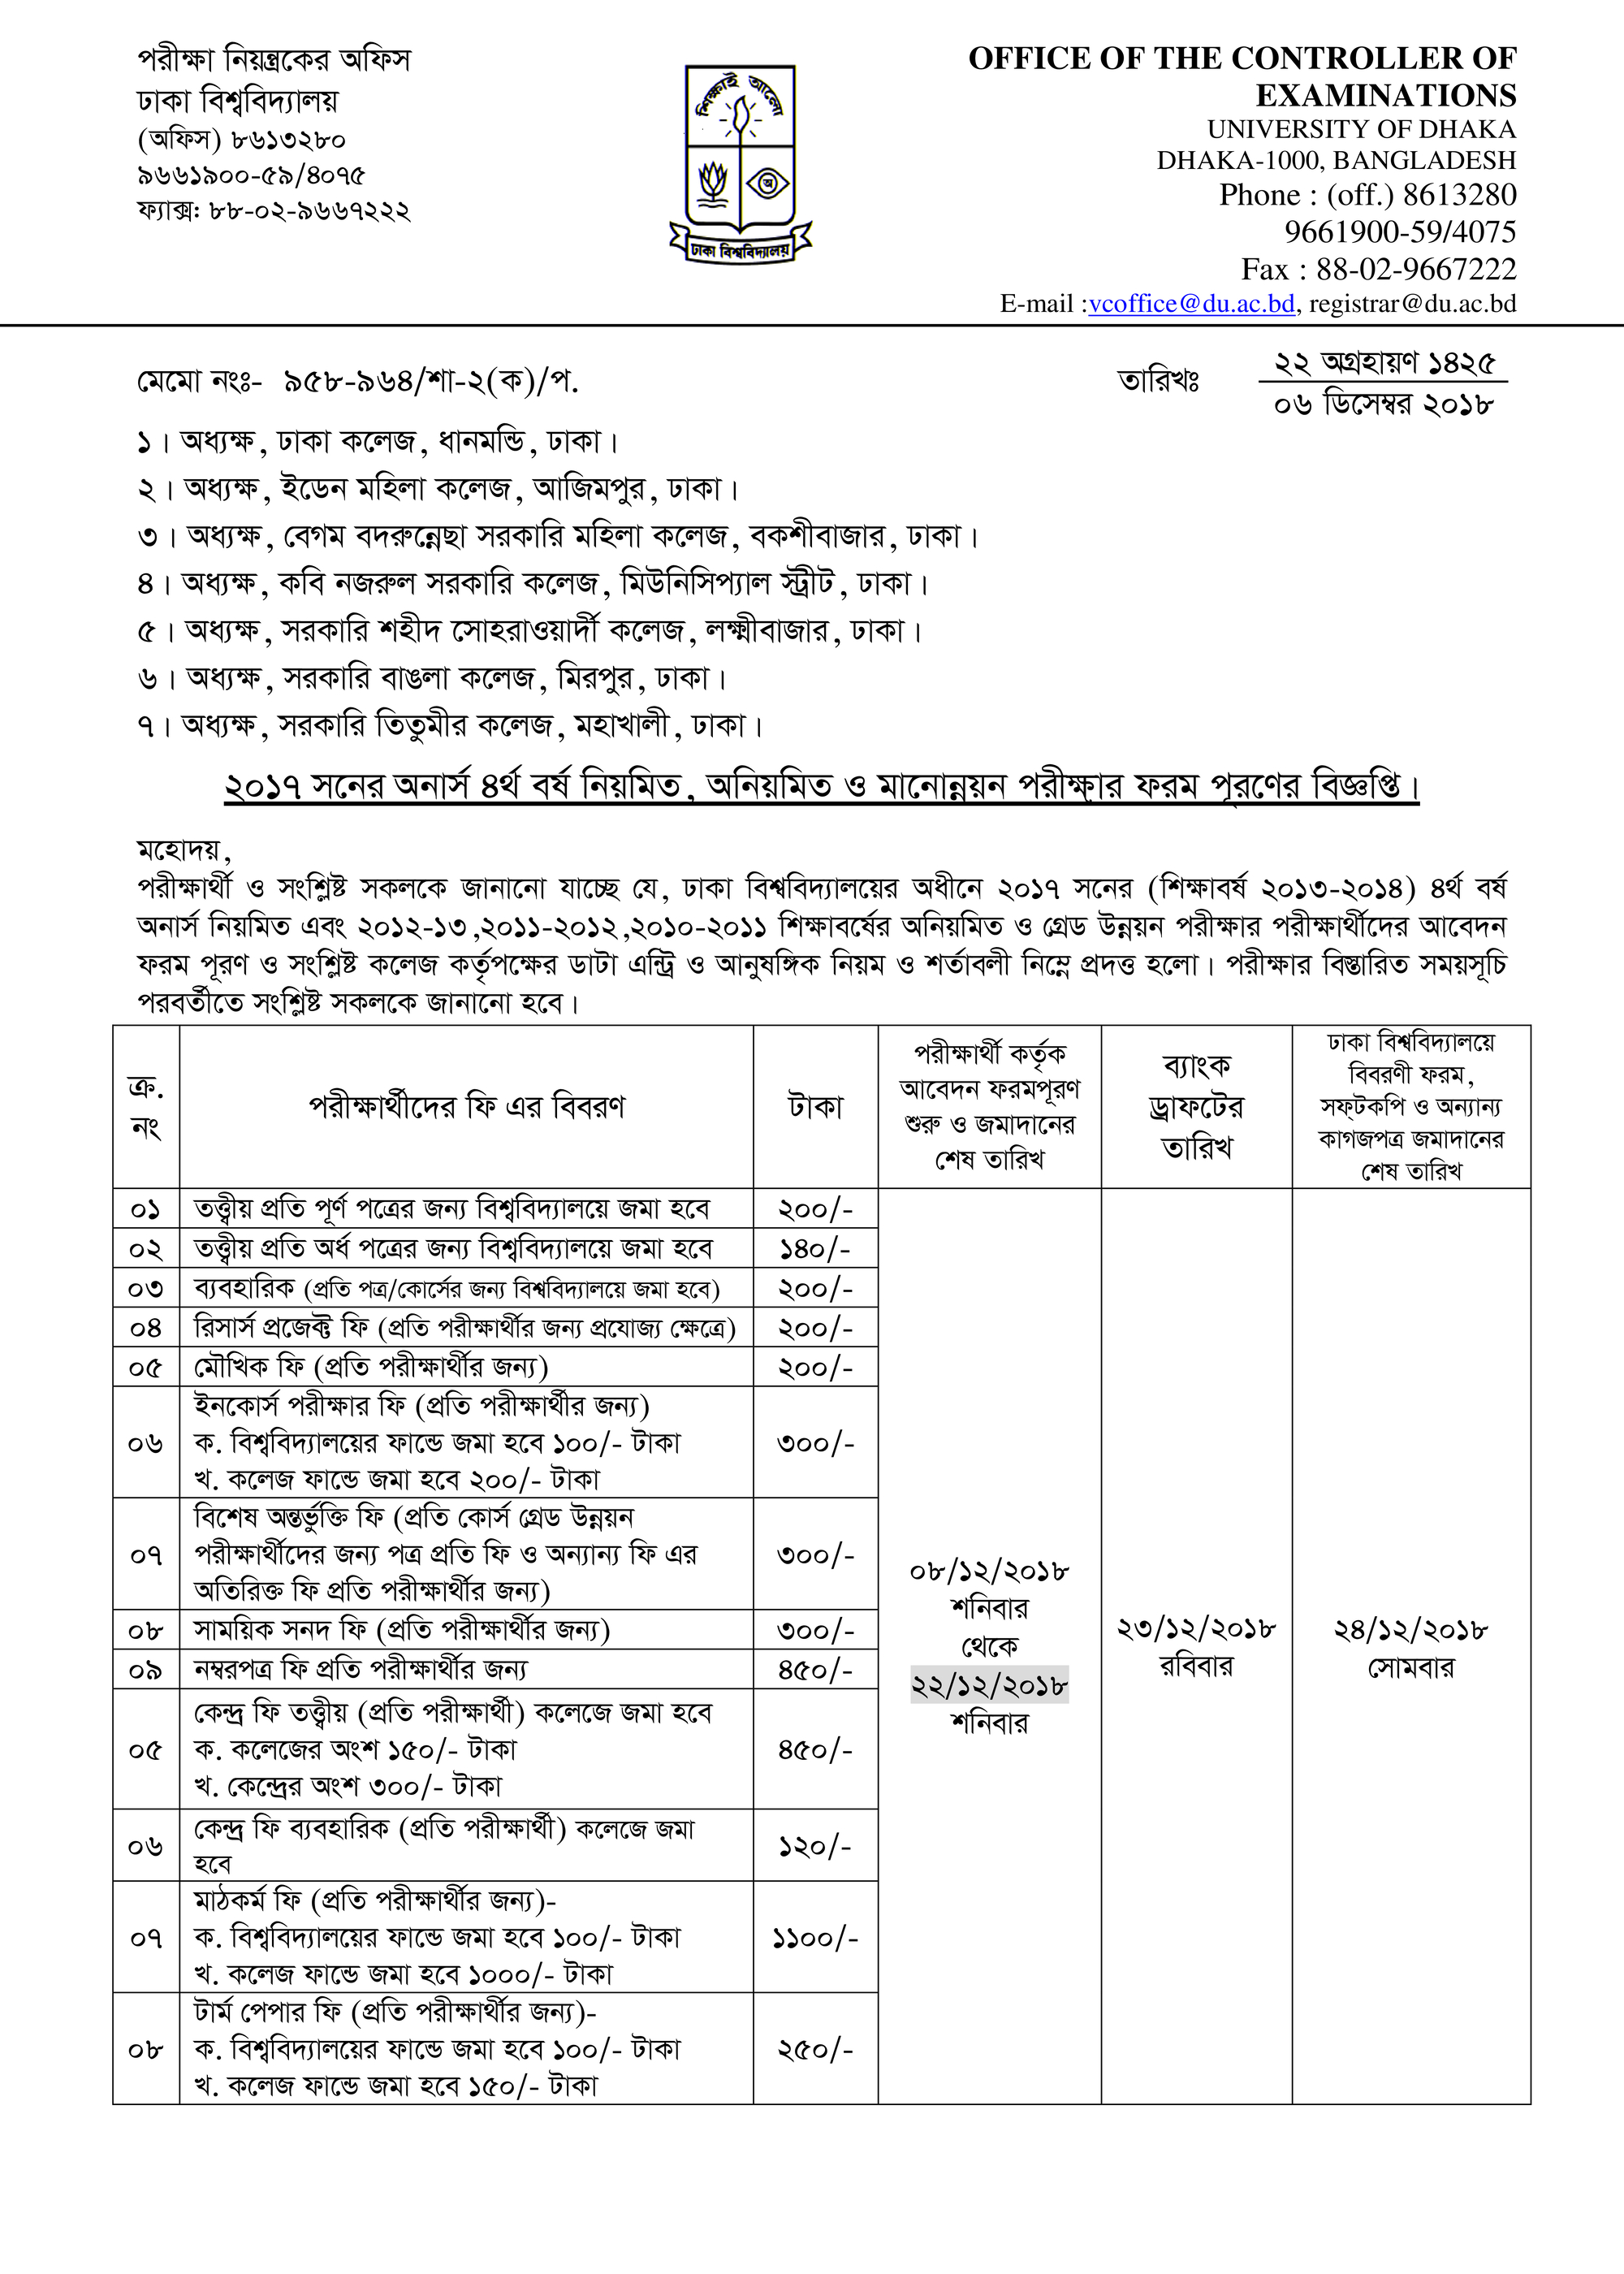 DU 7 college Honours 4th Year Form Fill up Notice 2018